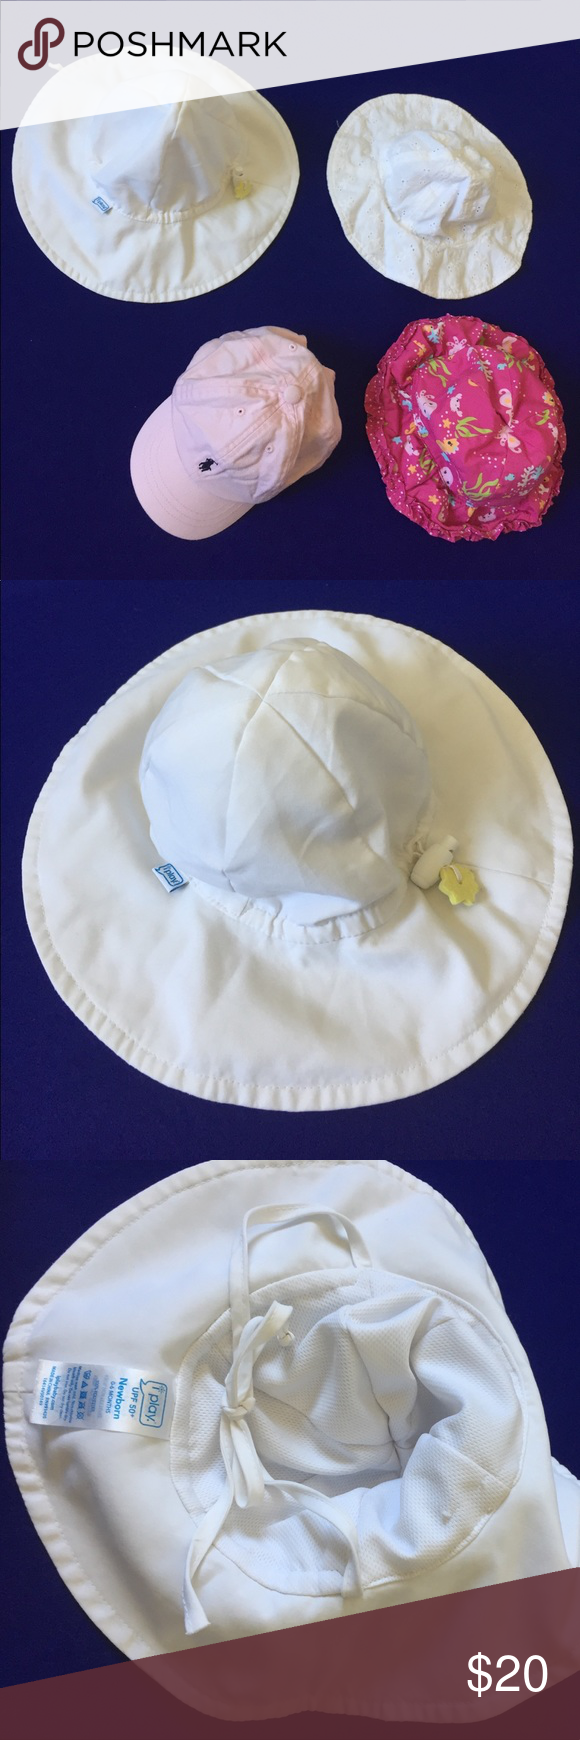 Lot of 5 Sun Hats for Baby Infant Girl Newborn The white iPlay hat is UPF  50+ 5ca7ec3b5127